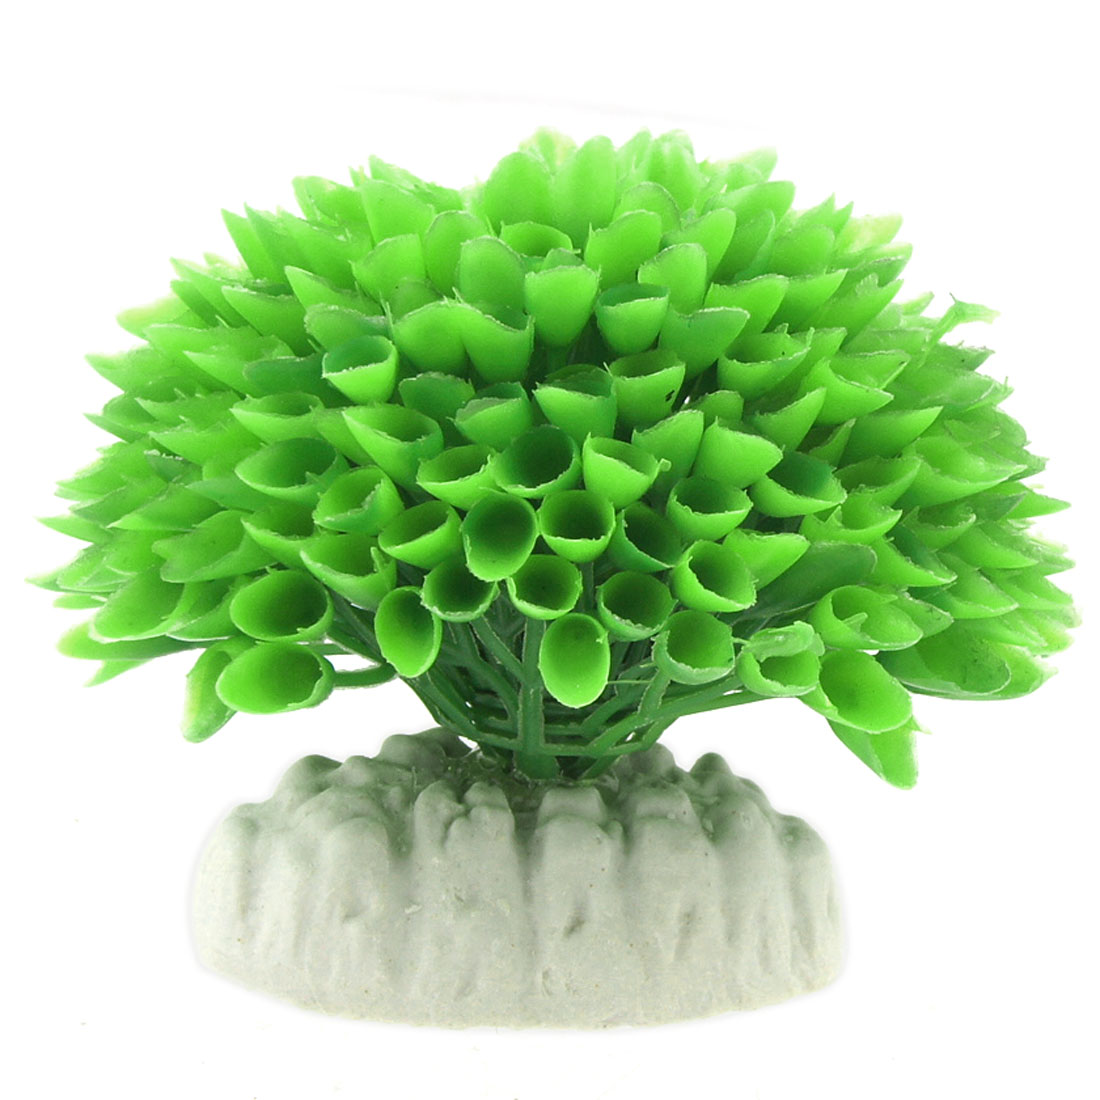 Aquarium Ornament Ceramic Base Plastic Ball Plant Green